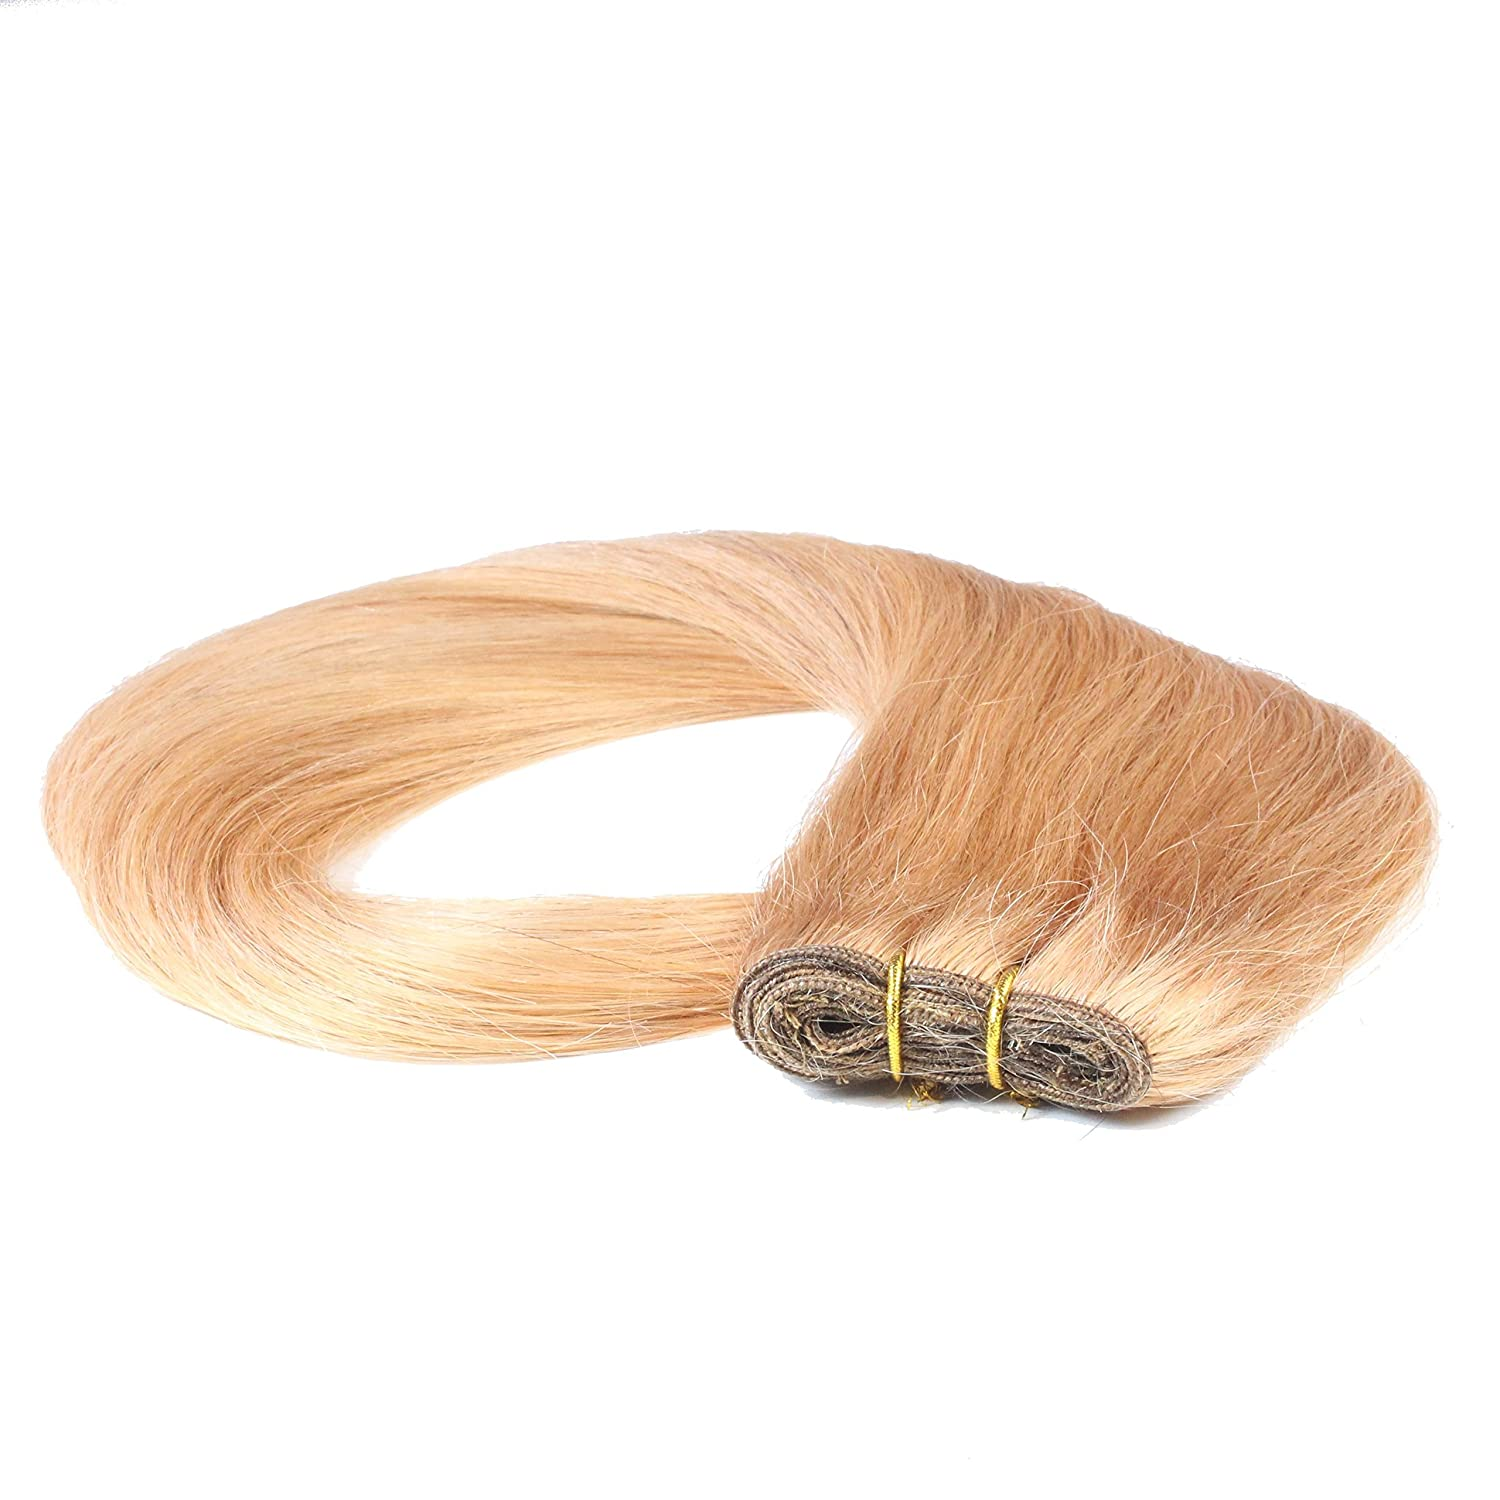 Hair2Heart Extensiones de Cortina Cosida Pelo Natural - 70cm - Liso, Color 12 Miel Rubia: Amazon.es: Belleza